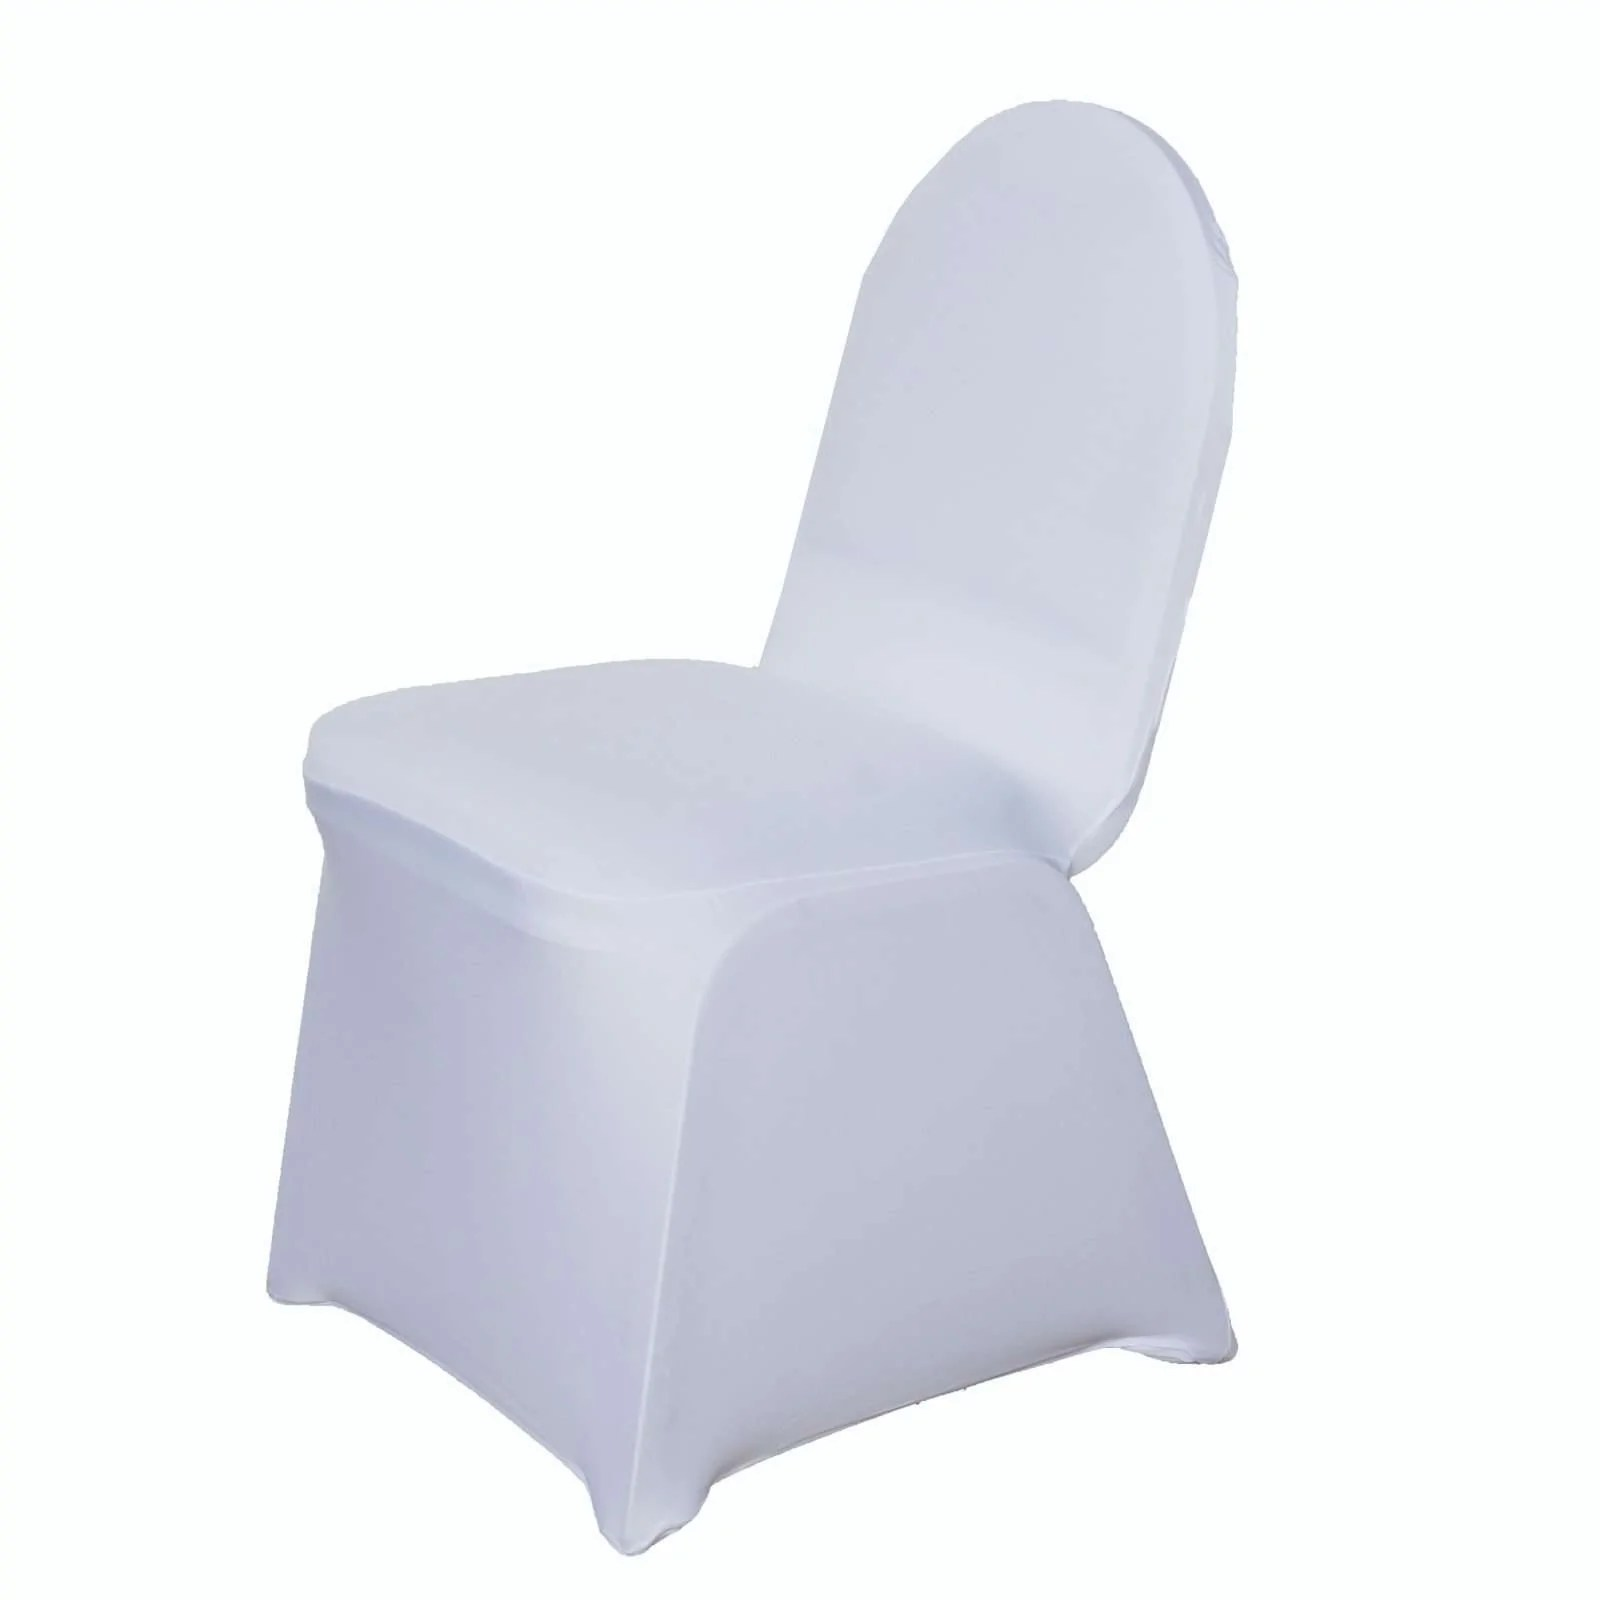 banquet chair covers for sale kitchen breakfast table and chairs wholesale white spandex stretch cover wedding party